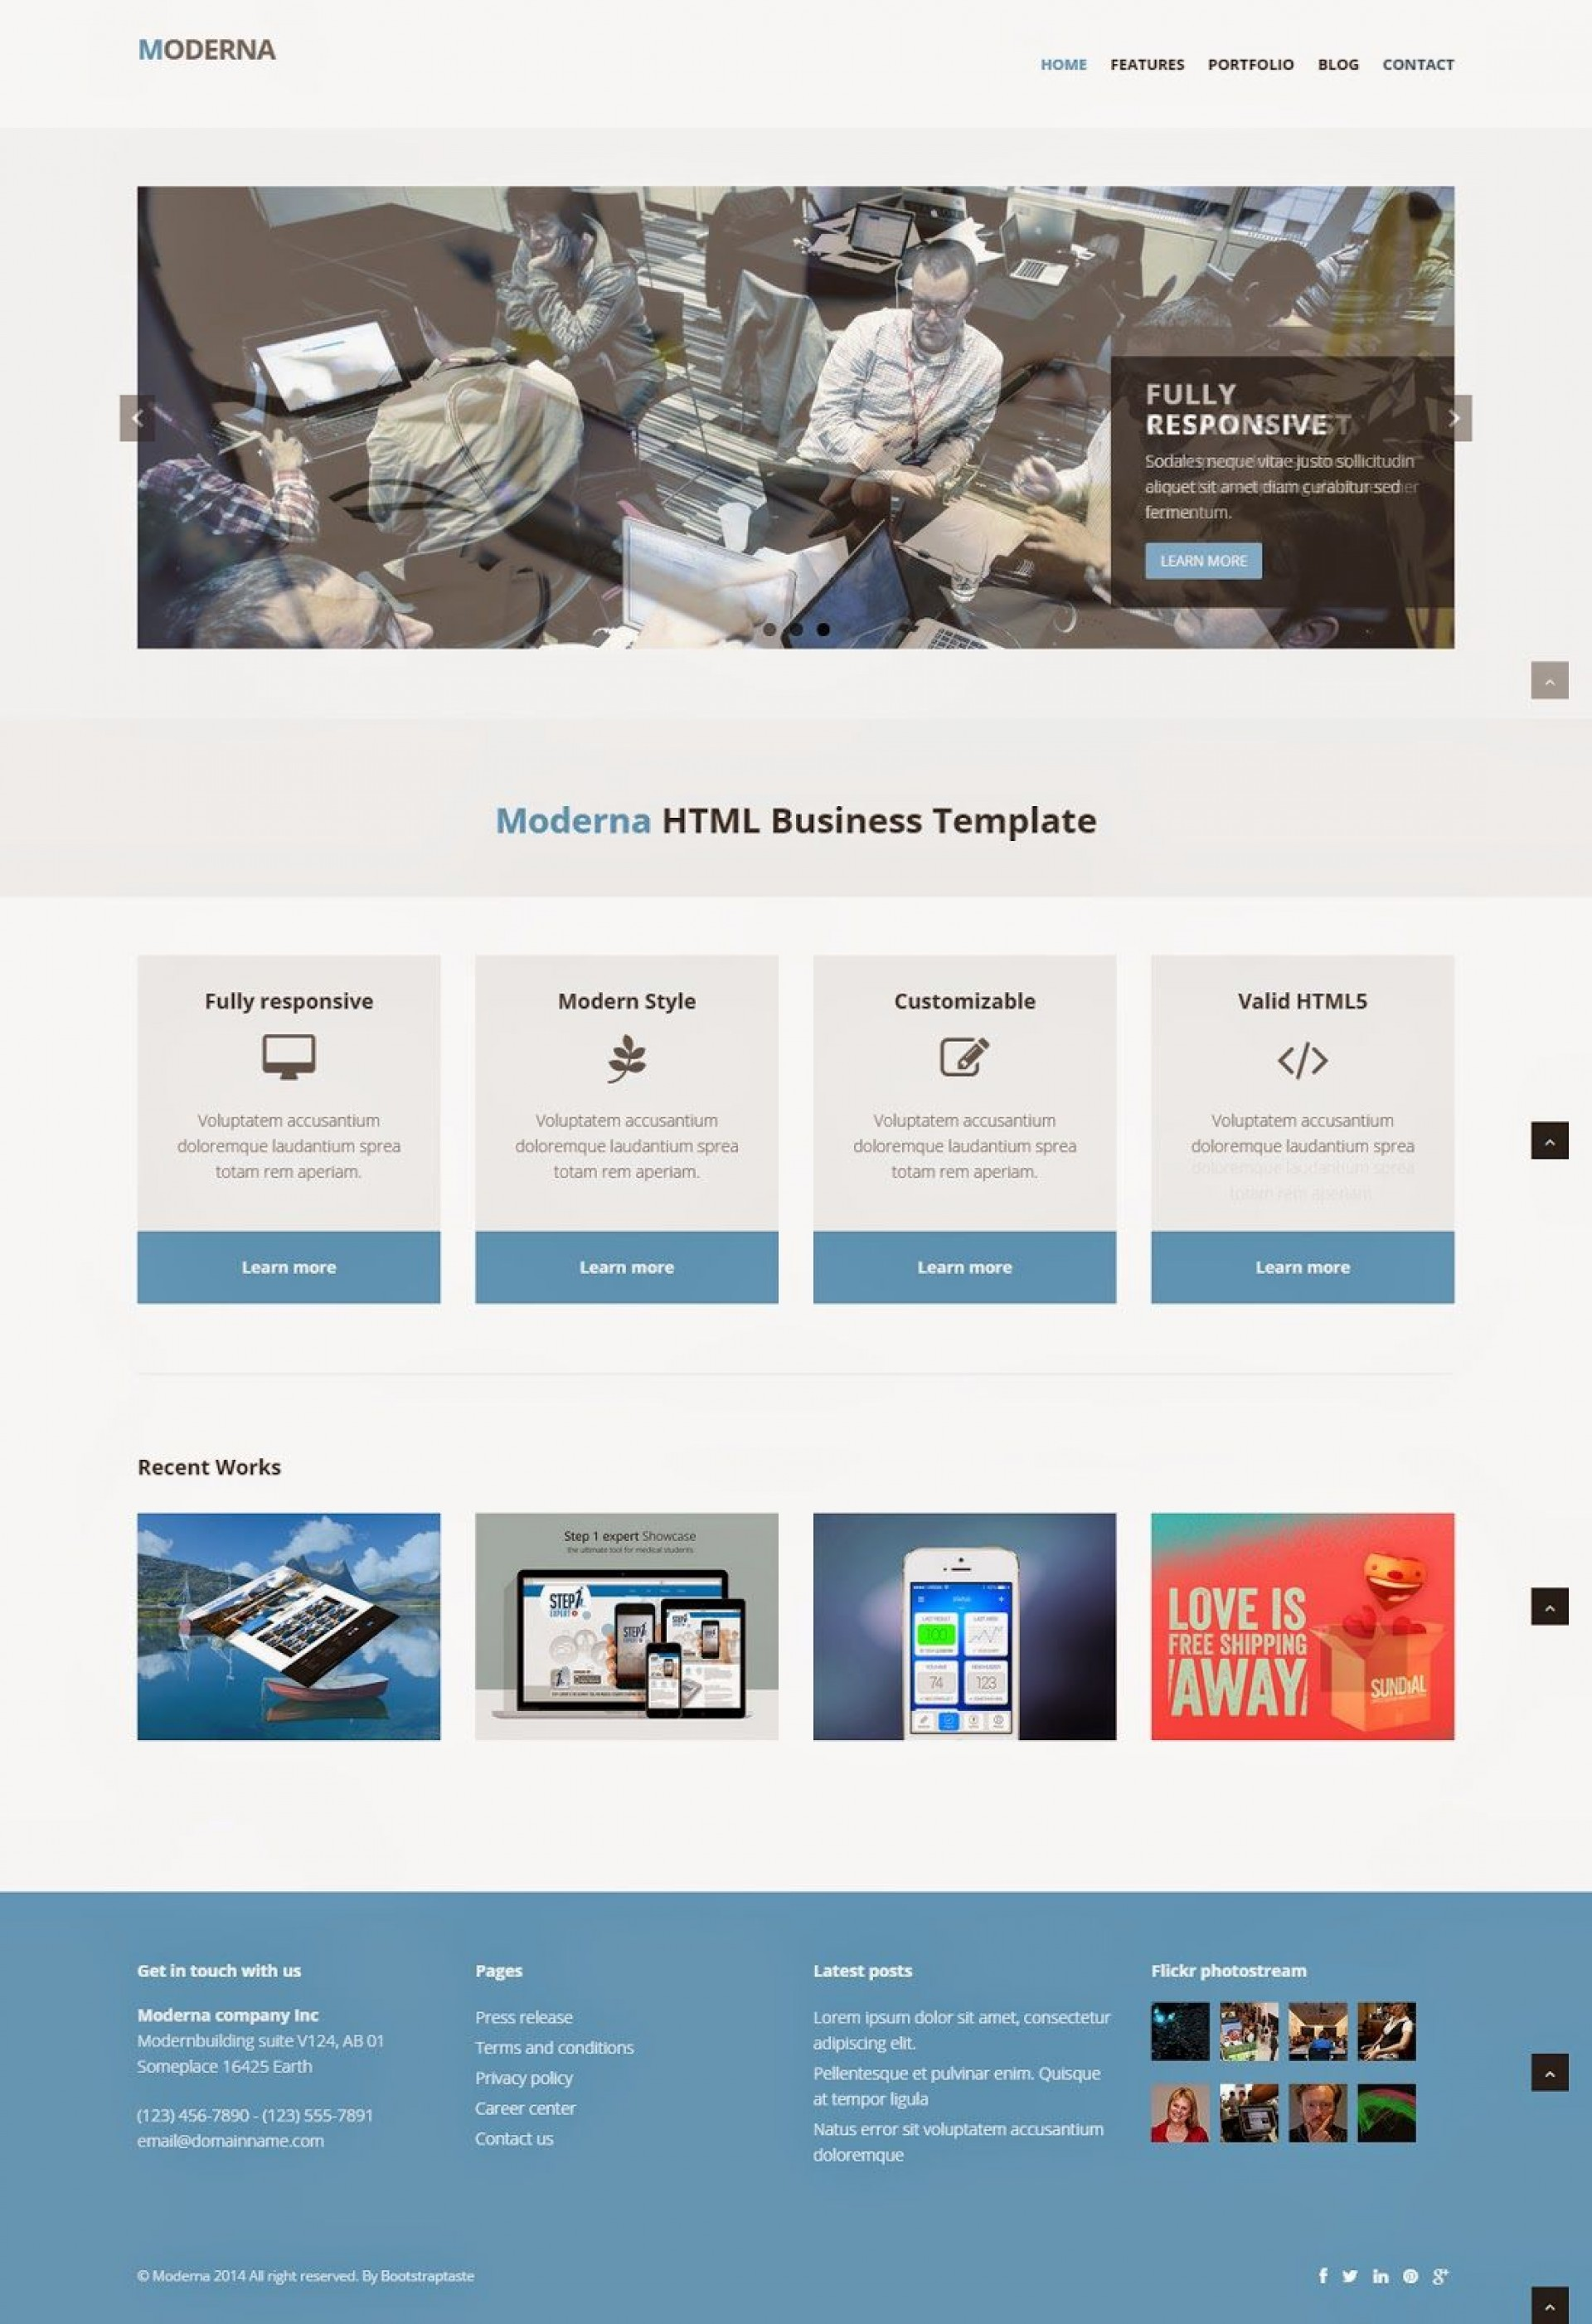 009 Wonderful Website Template Html Free Download Design  Indian School Software Company Spice1920